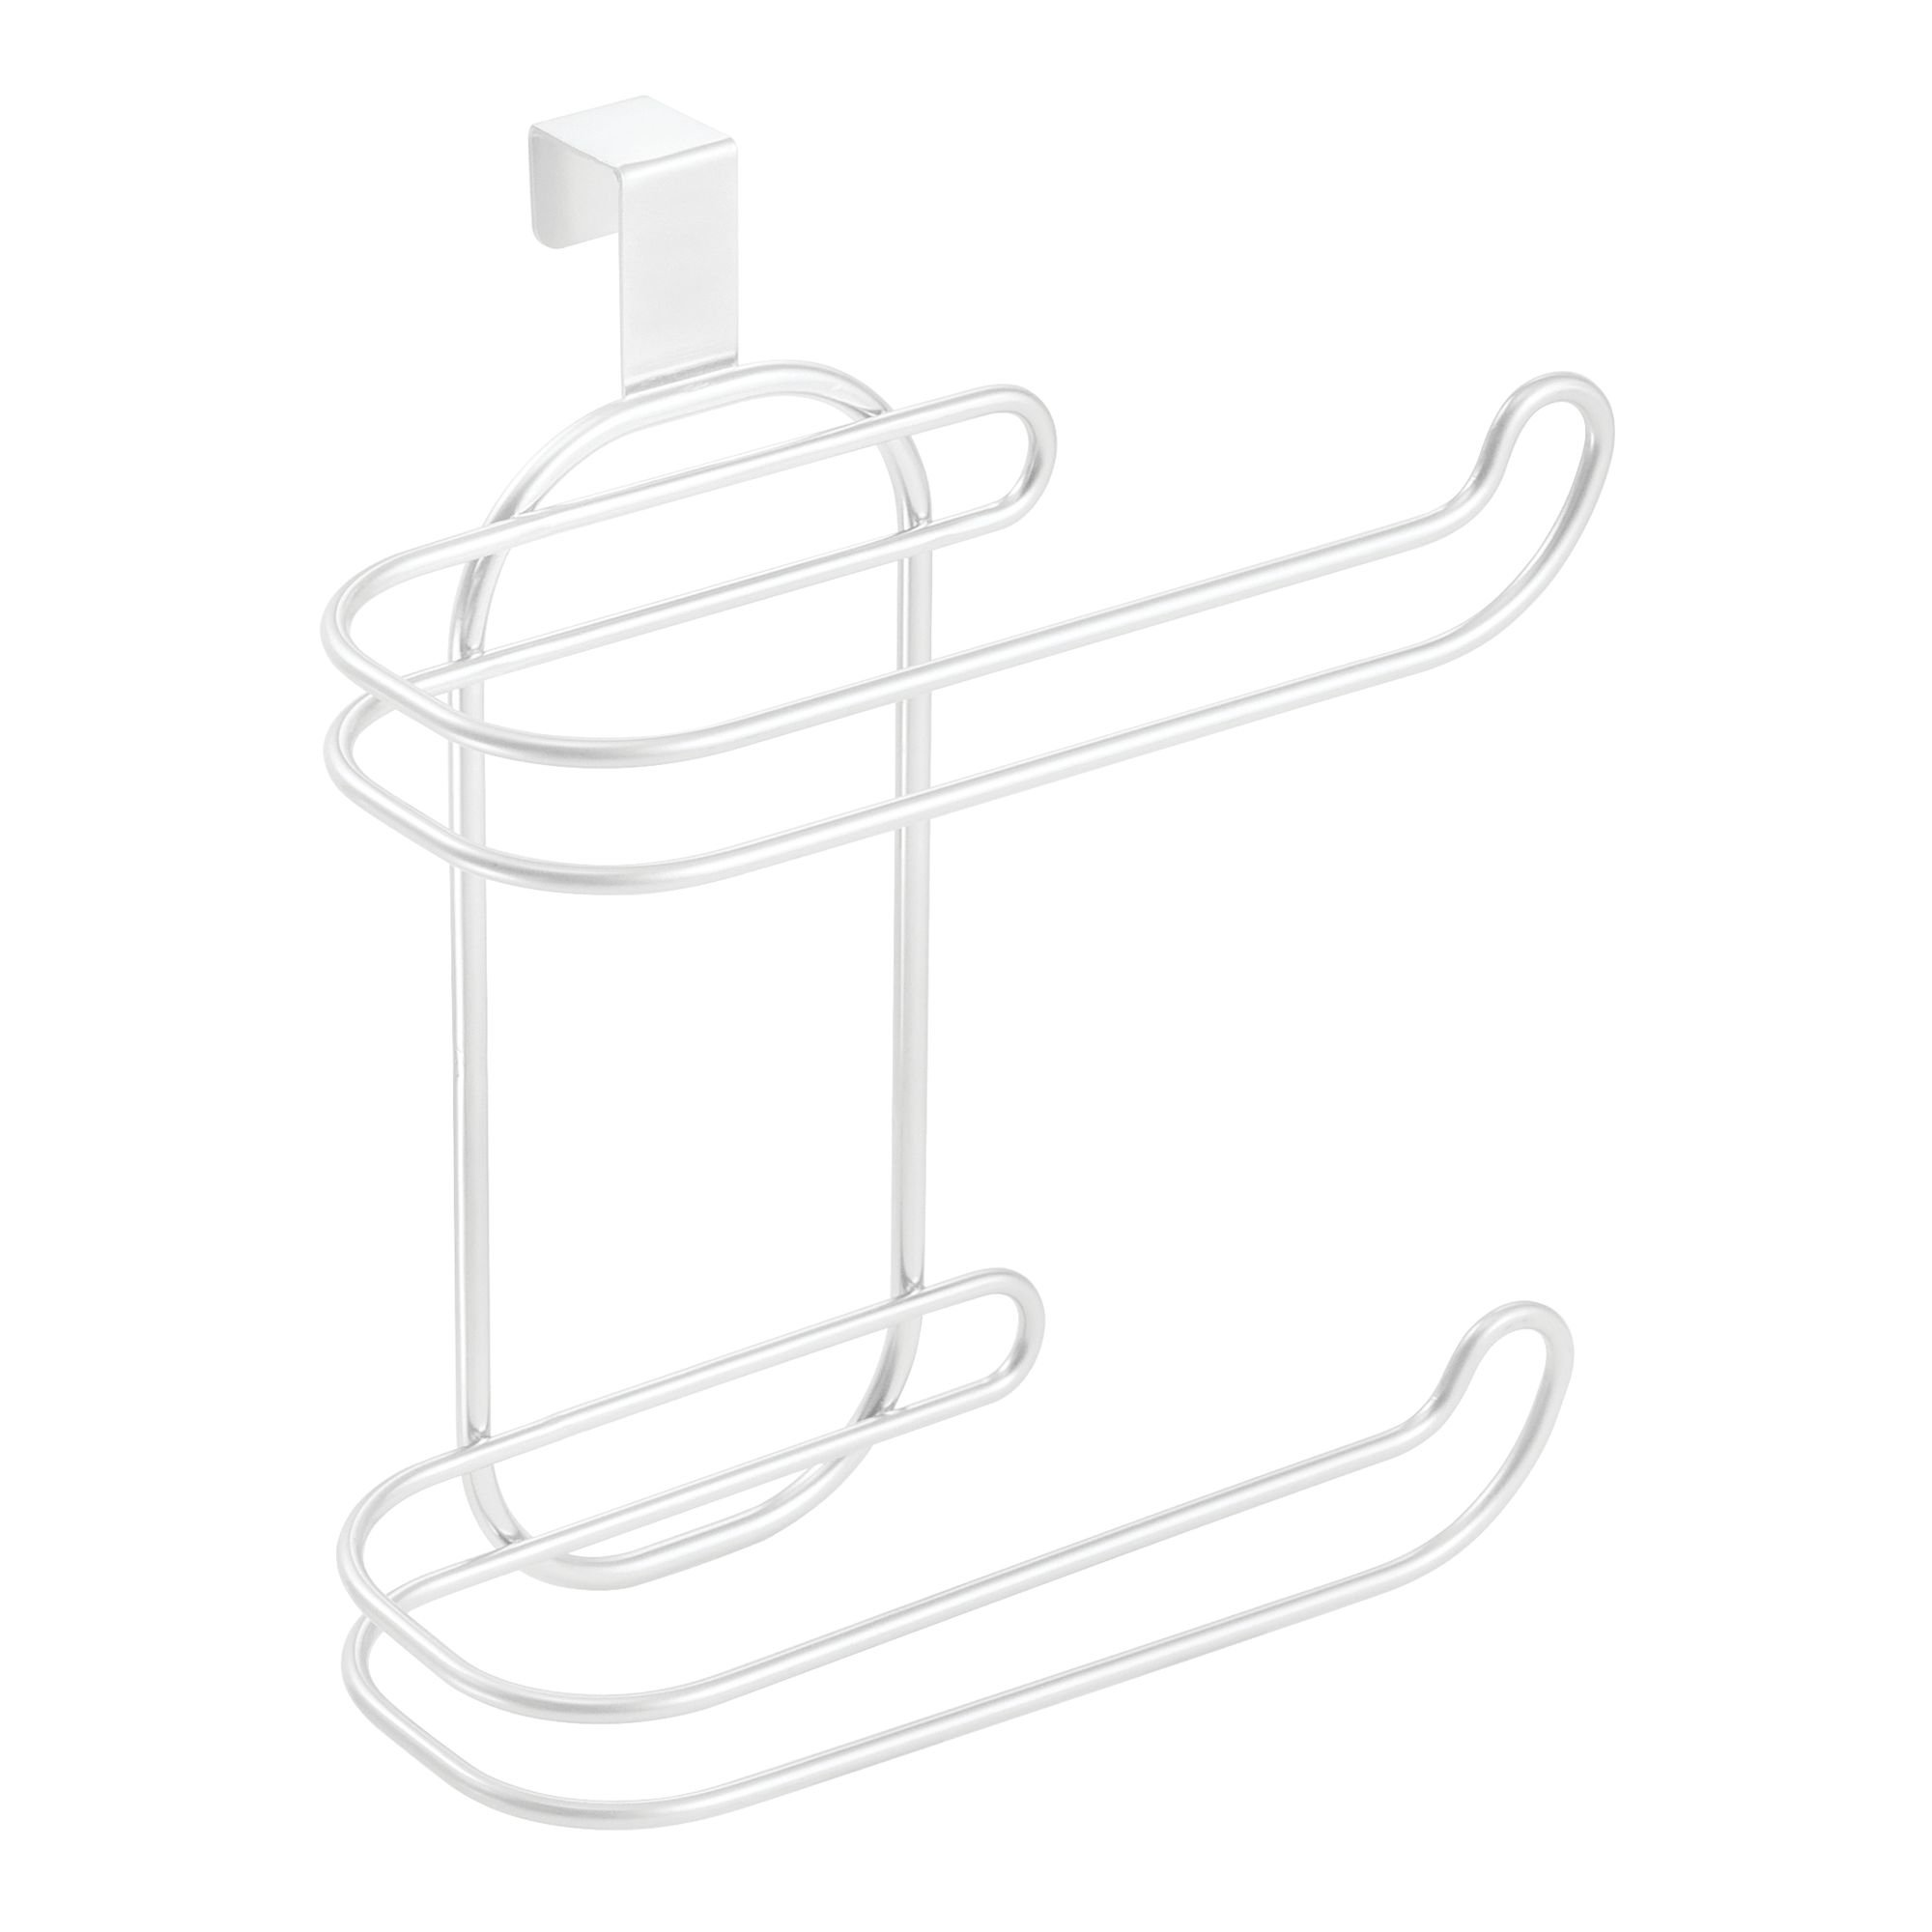 mDesign Compact Hanging Over The Tank Toilet Tissue Paper Roll Holder and Dispenser for Bathroom Storage - Holds 1 Extra Roll - Space Saving Design - Pack of 2, Durable Metal Wire in White Finish by mDesign (Image #5)